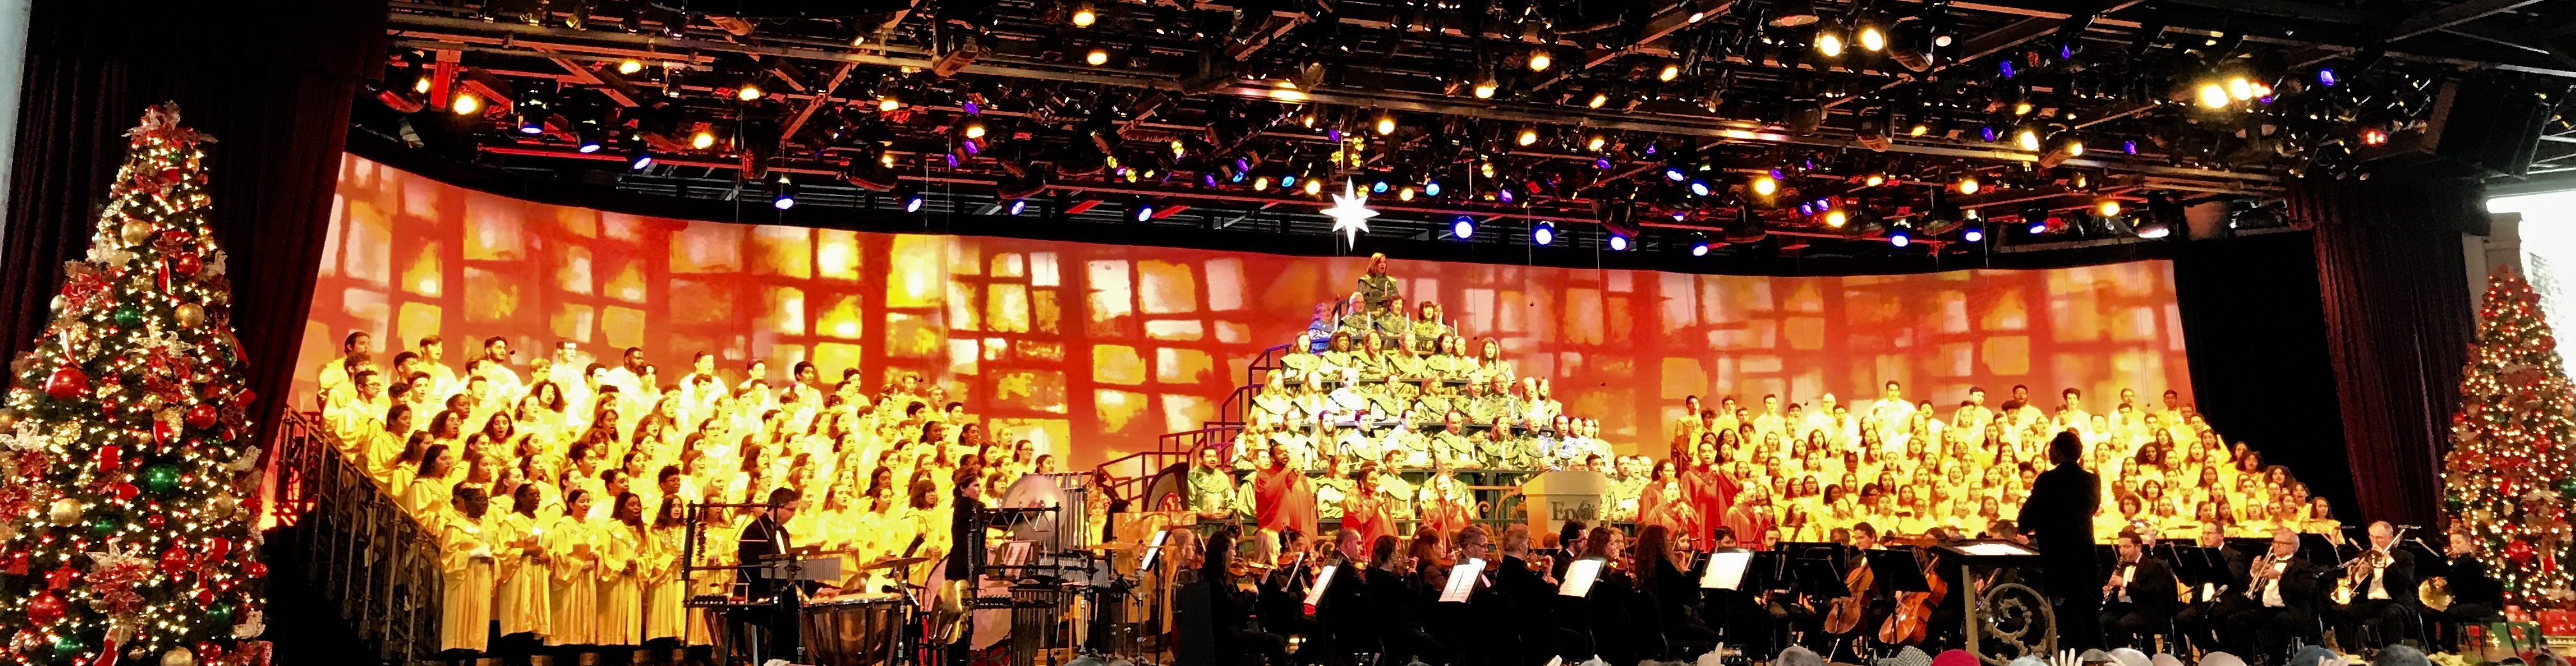 Candlelight Processional Review